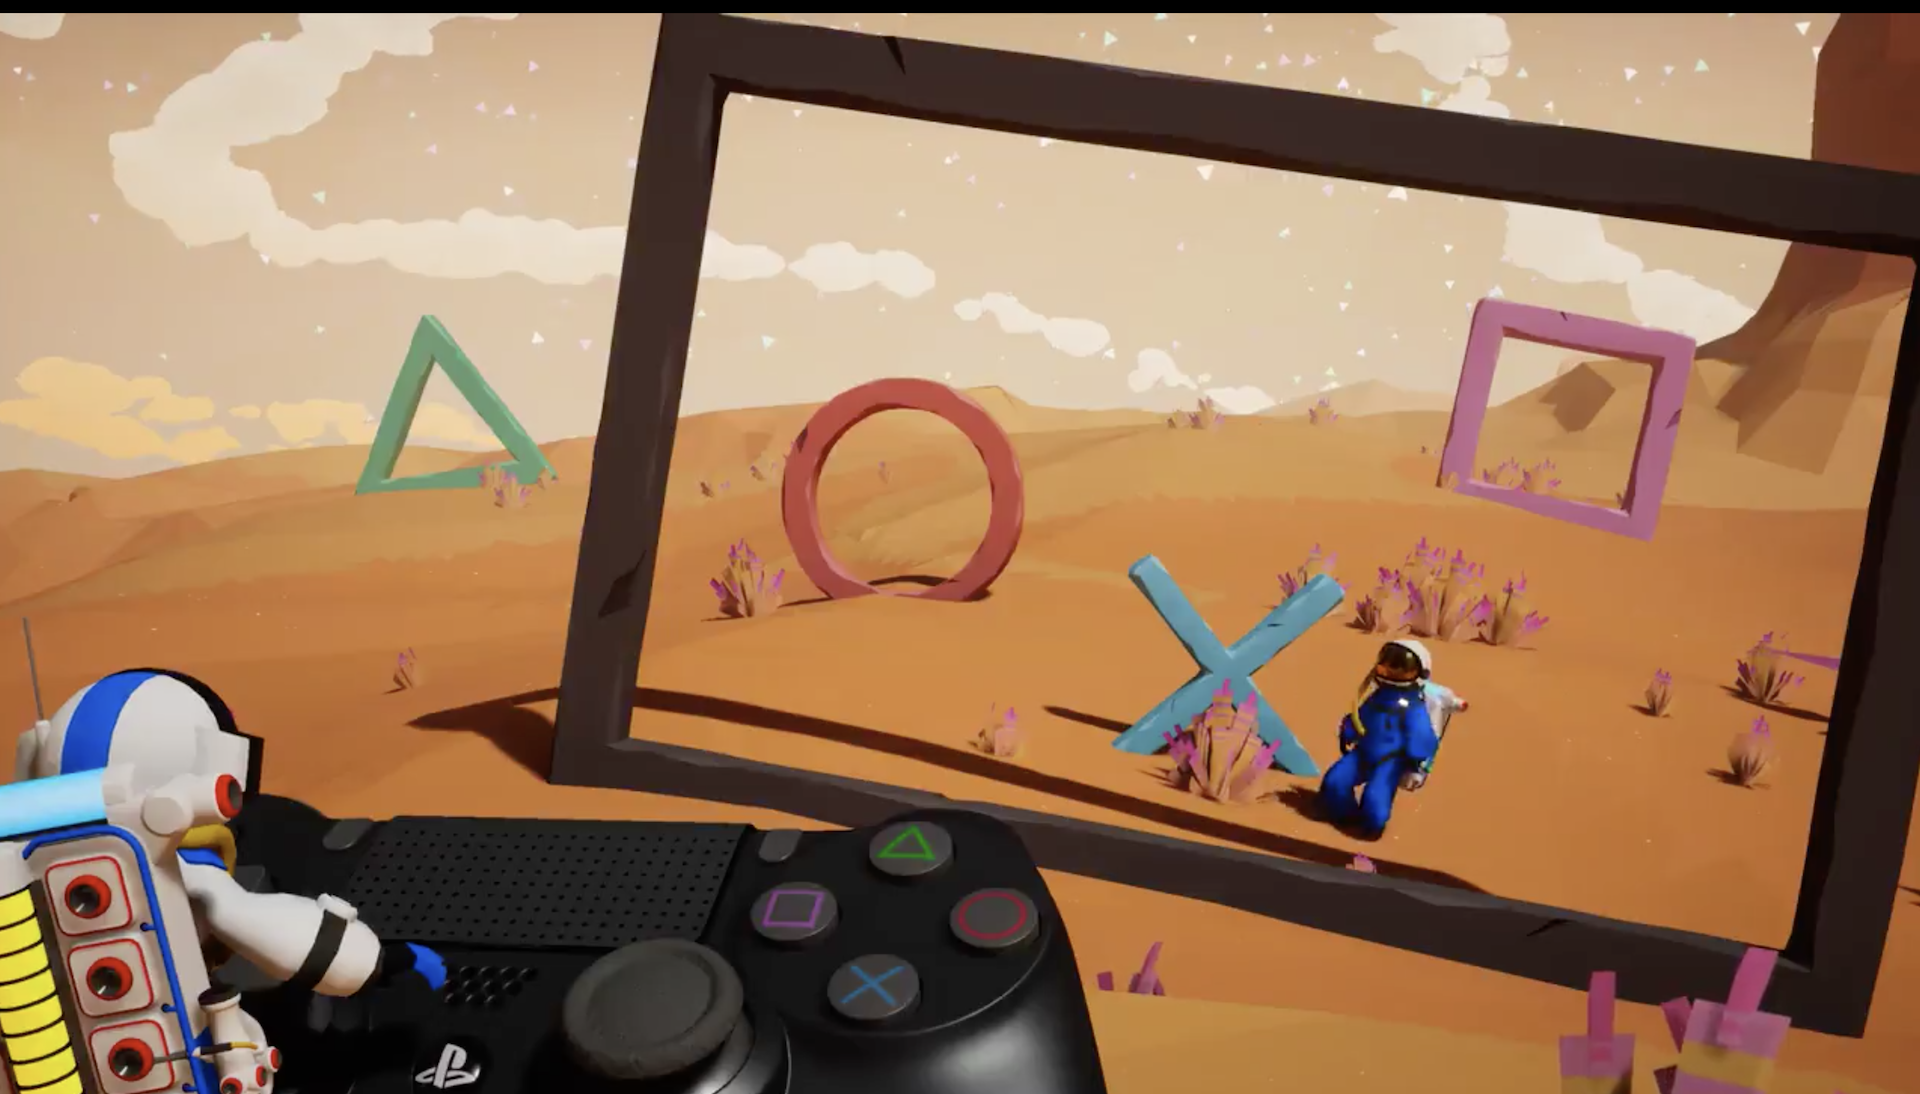 Astroneer coming to PS4 this fall, but not Nintendo Switch